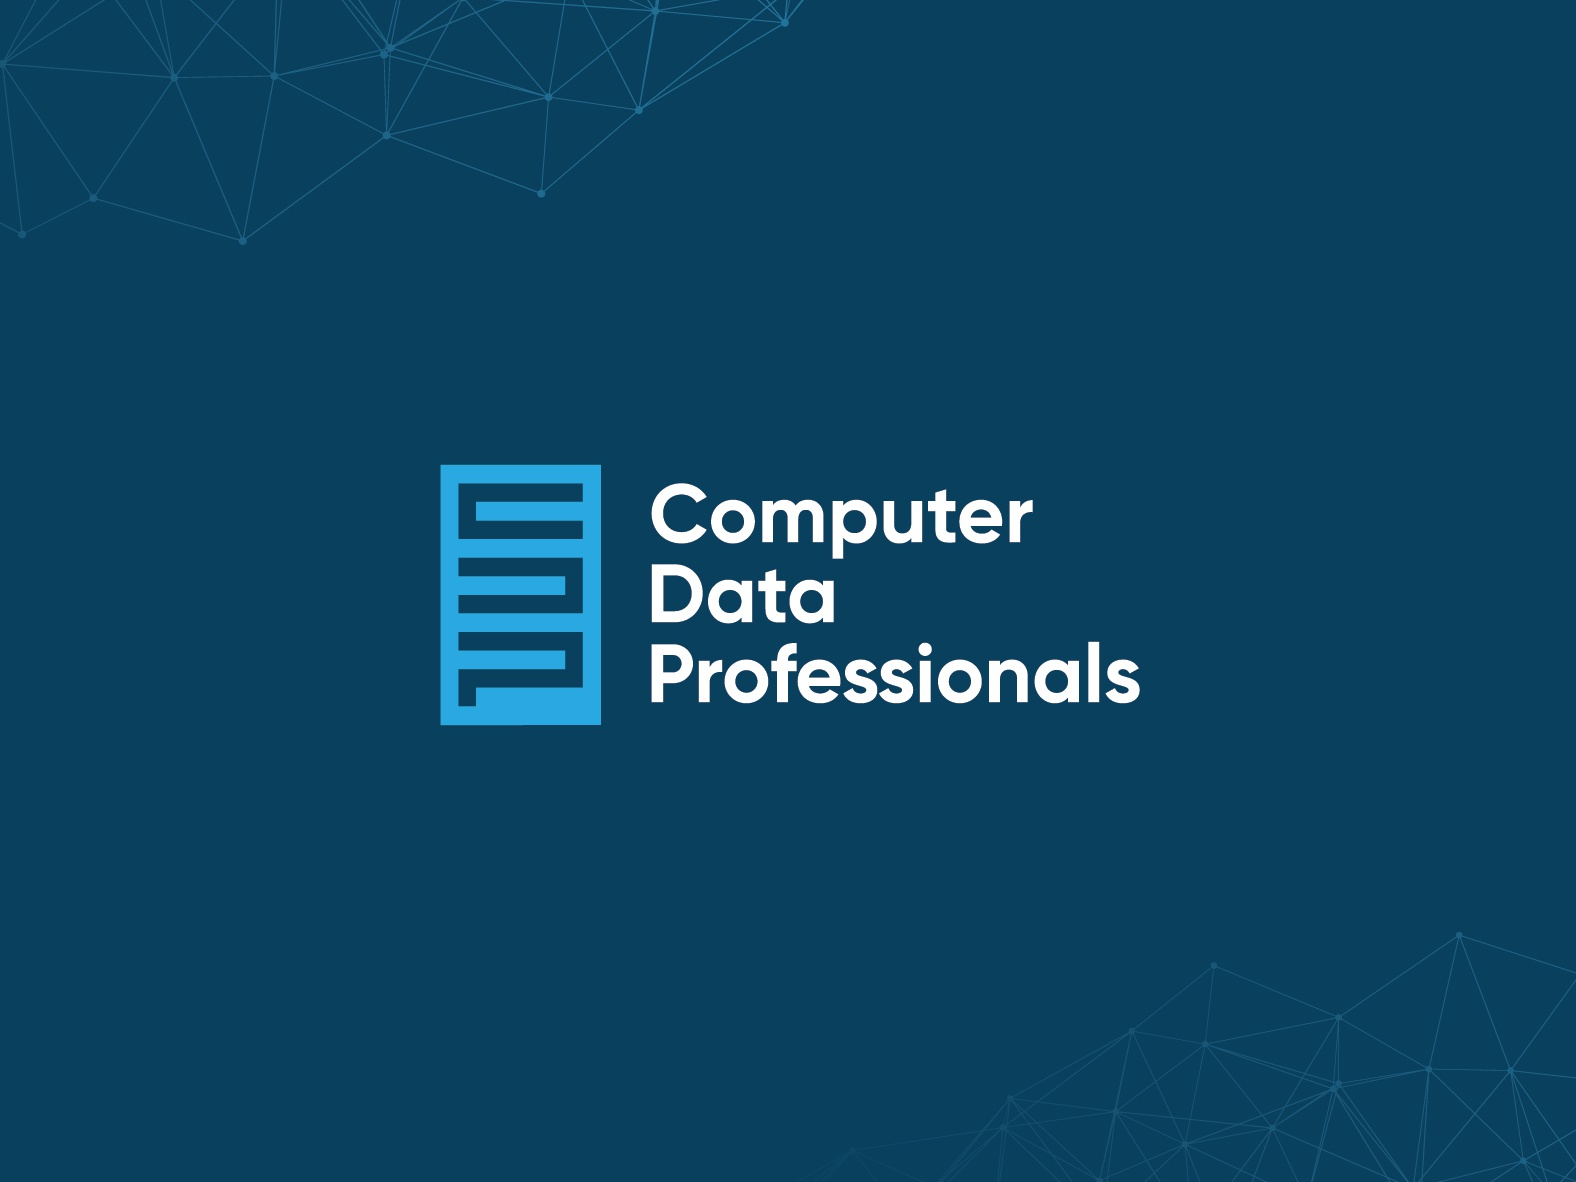 Computer Data Professionals 💻 brandidentity visualidentity professionals data computer designer digital designer digital design type minimal vector typography logo deisgn logo icon identity branding brand graphic  design design